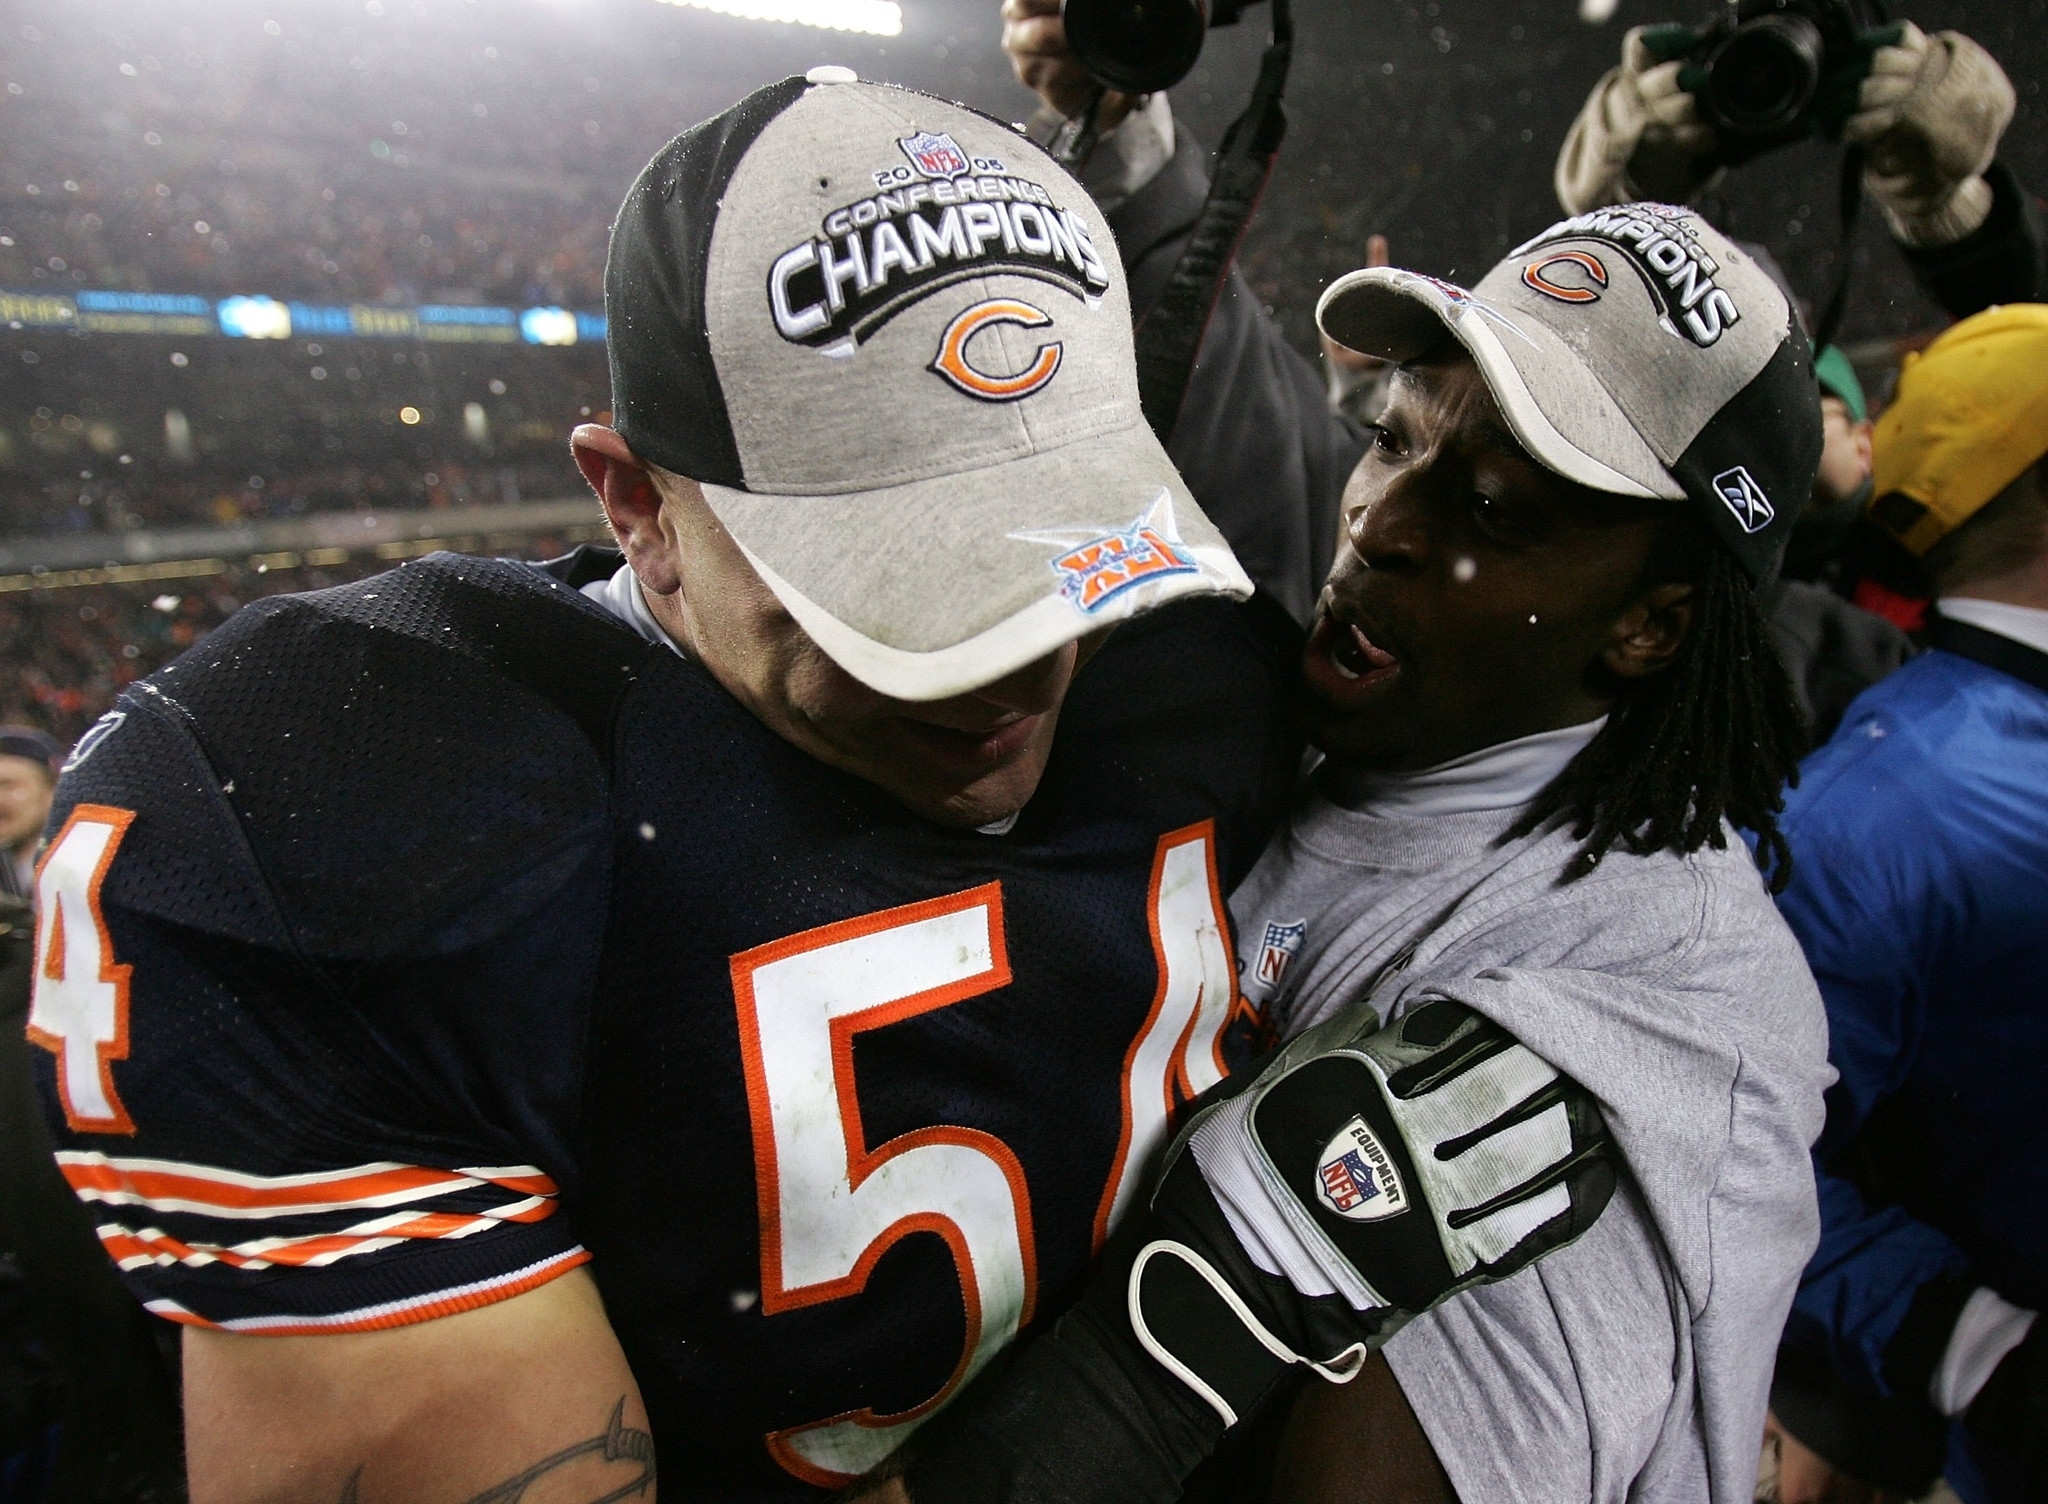 Jan. 21, 2007: Bears Advance To Second Super Bowl - Chicago intended for Bears Super Bowl 2007